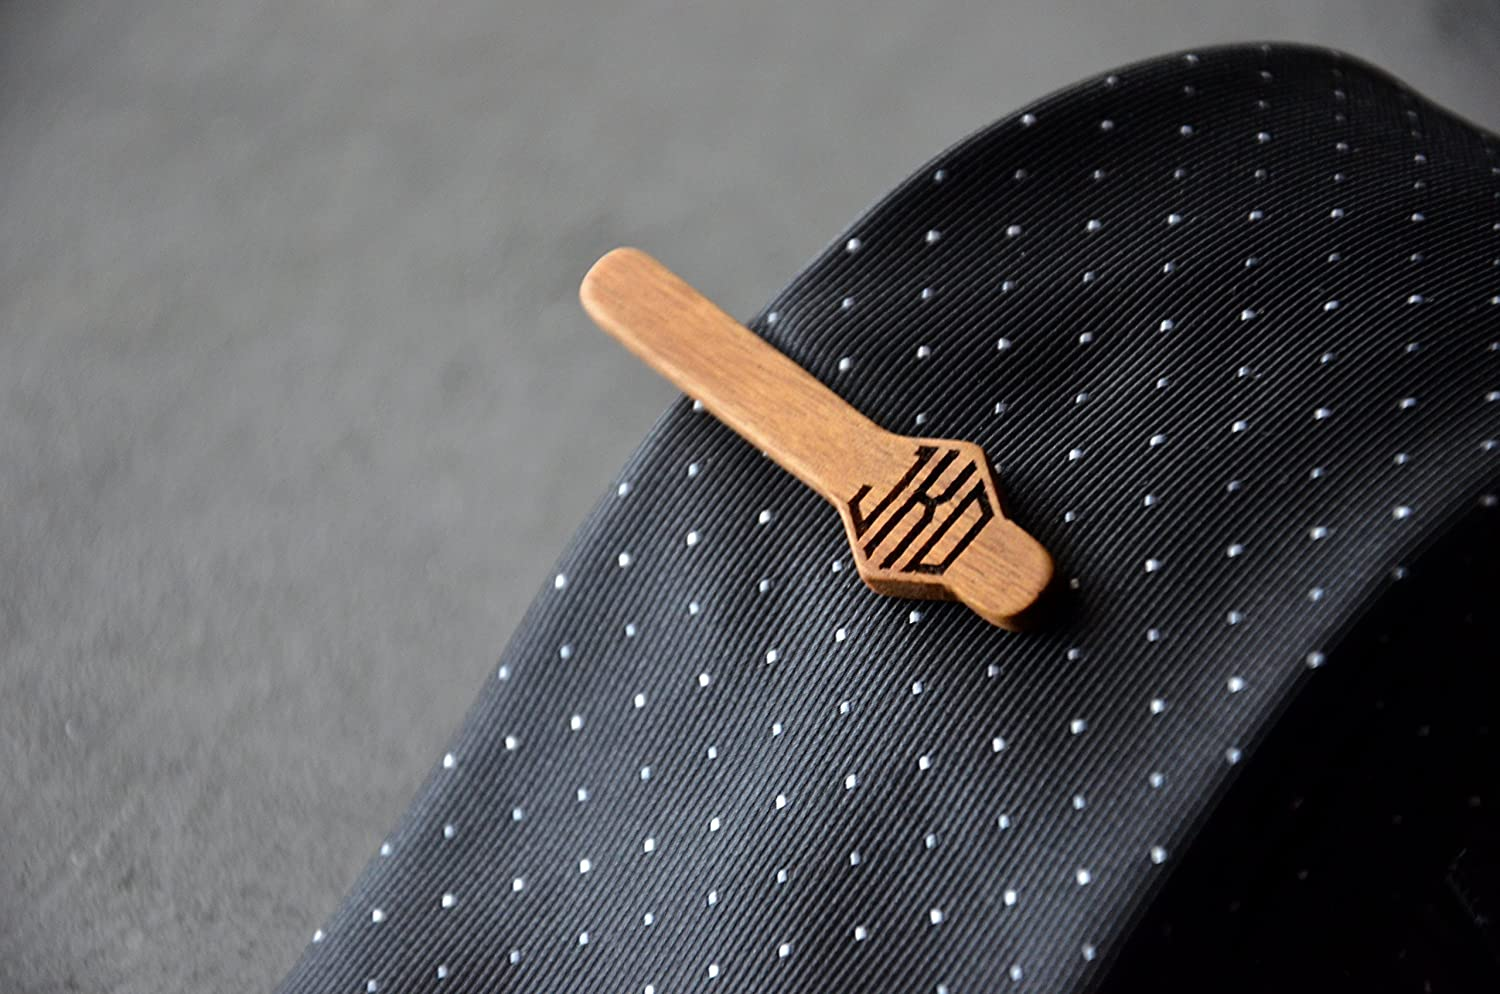 Wooden Tie Clip for men Tie Tack Bar Monogram Engraving Initials Custom Wooden Unique Groomsmen Gift for Guy best friend Fathers Day Gift Idea for Husband y Enjoy the Wood